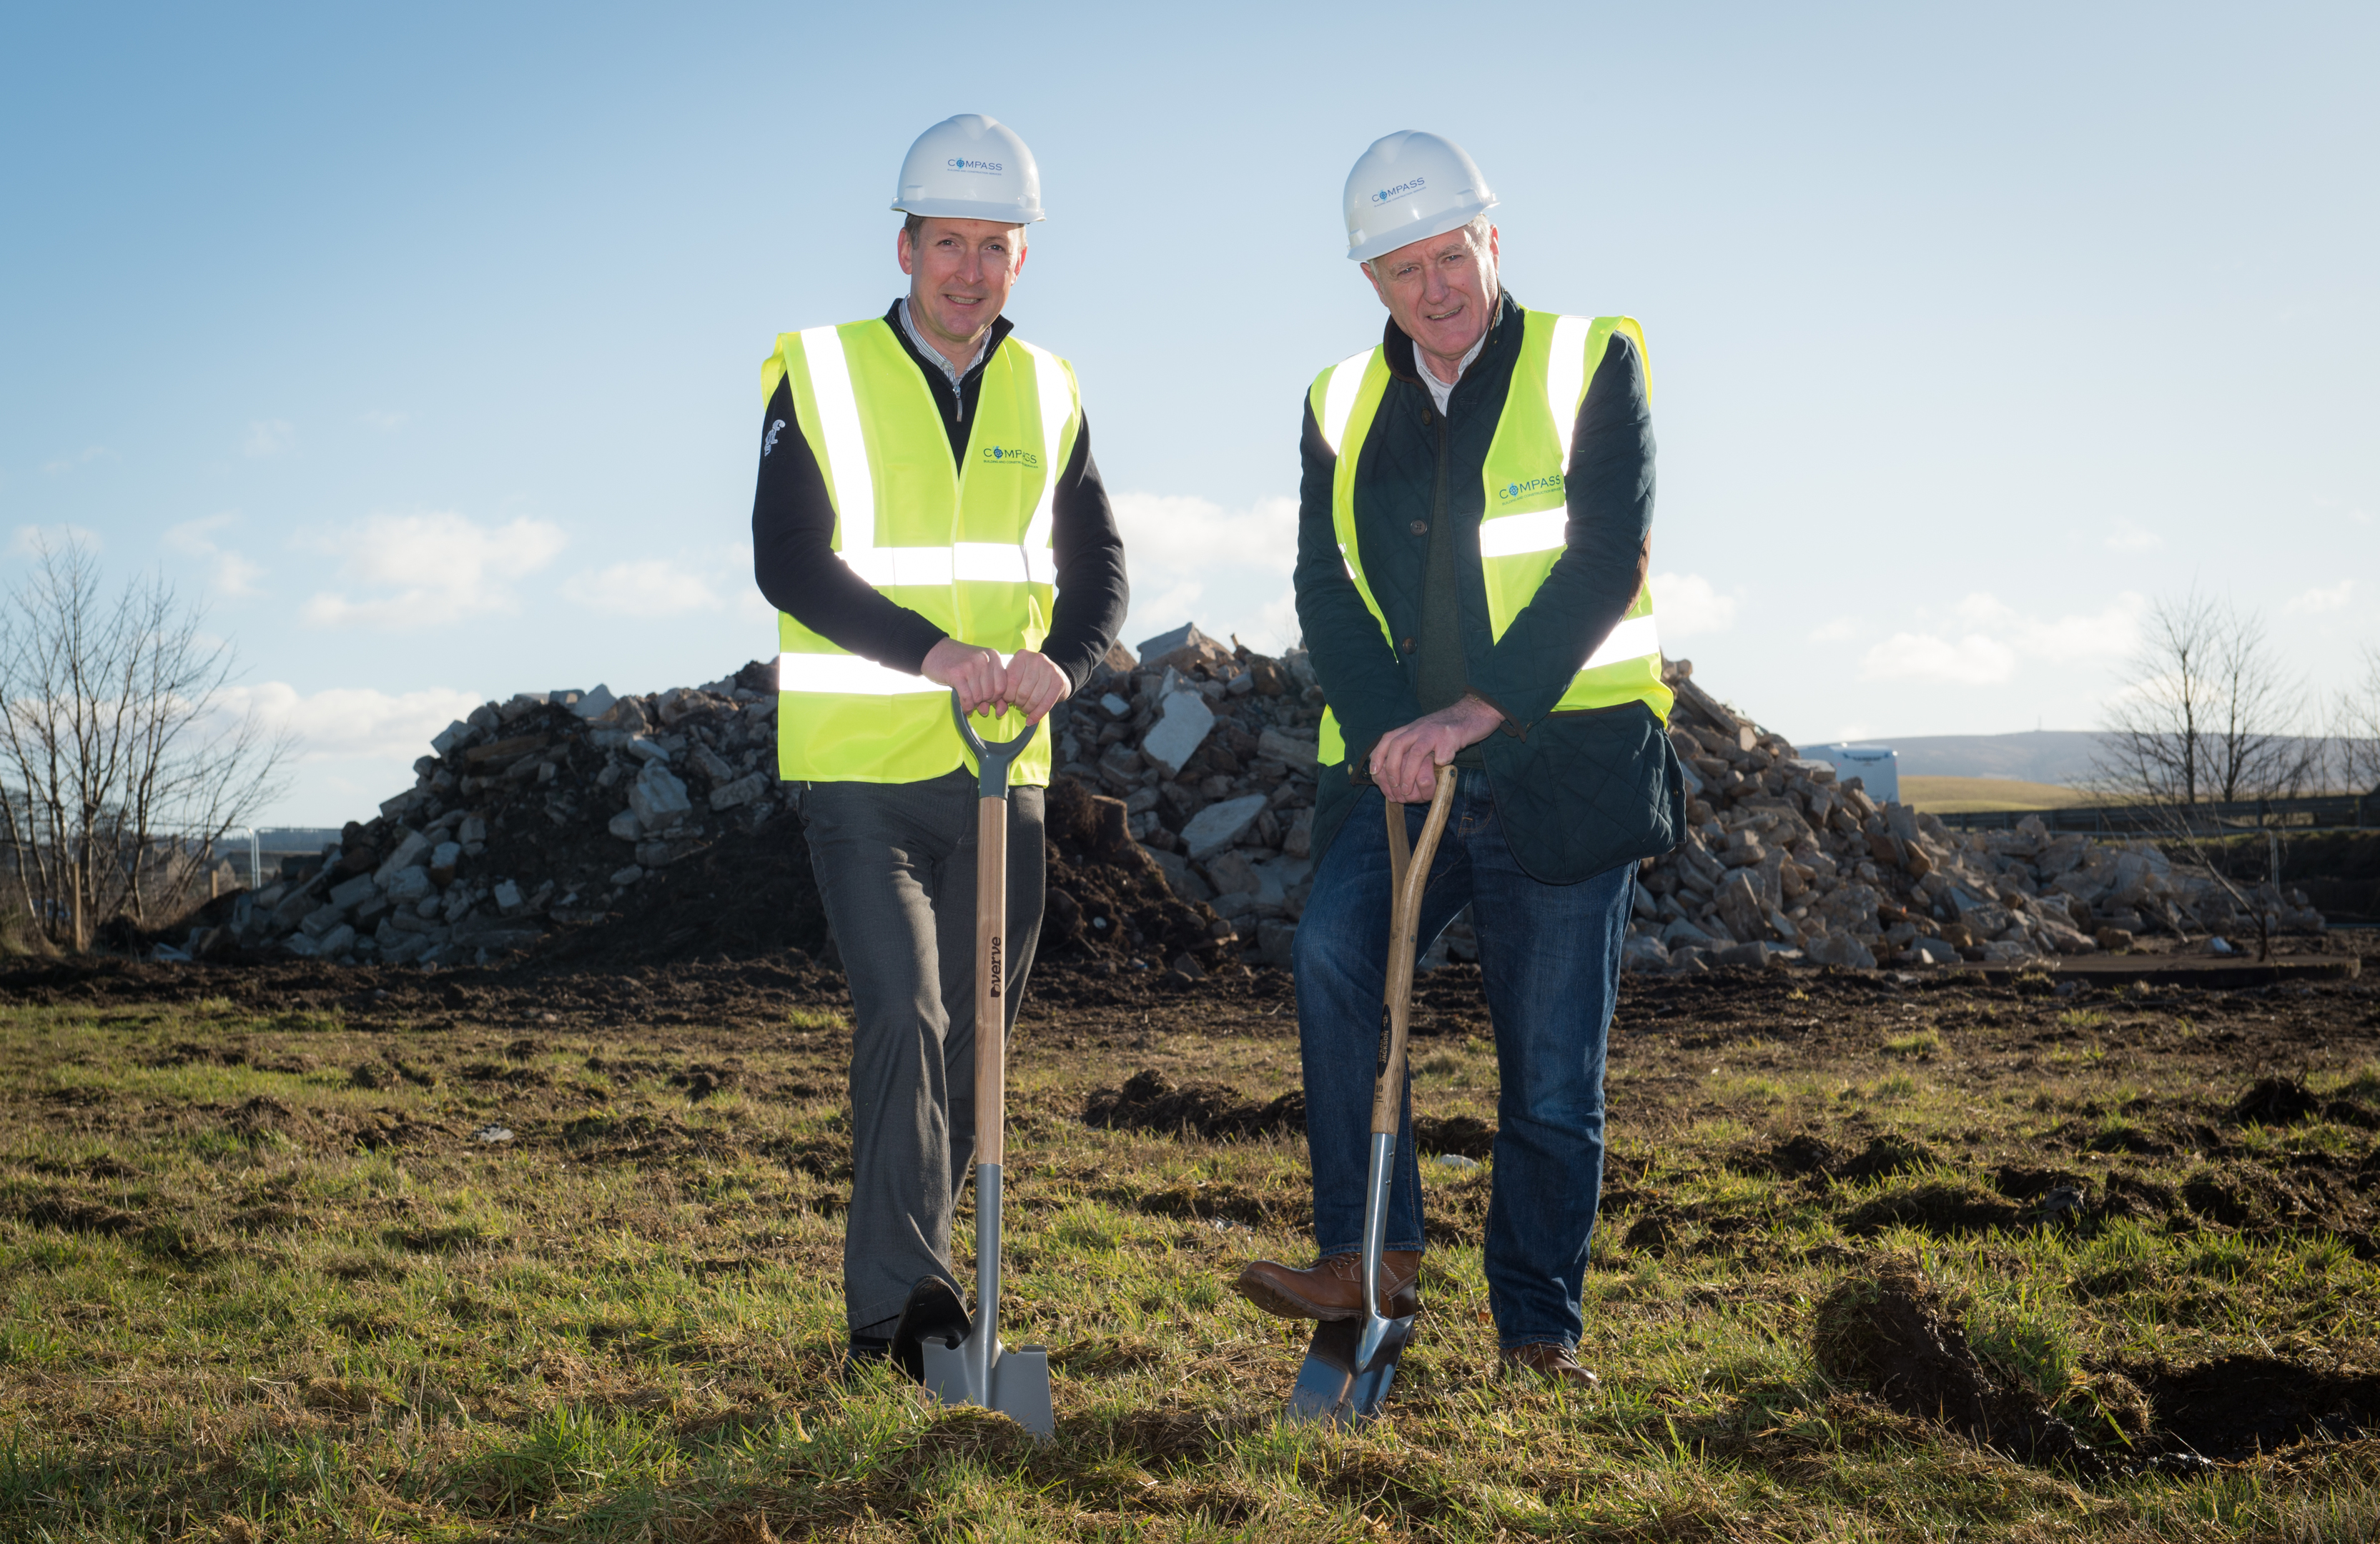 John Cowe (Right) Chairman of Moray Economic Partnership and Royce Clark (Left) MD of Grampian Furnishures Ltd at their new site next to the A96 in Elgin. Picture by Jason Hedges